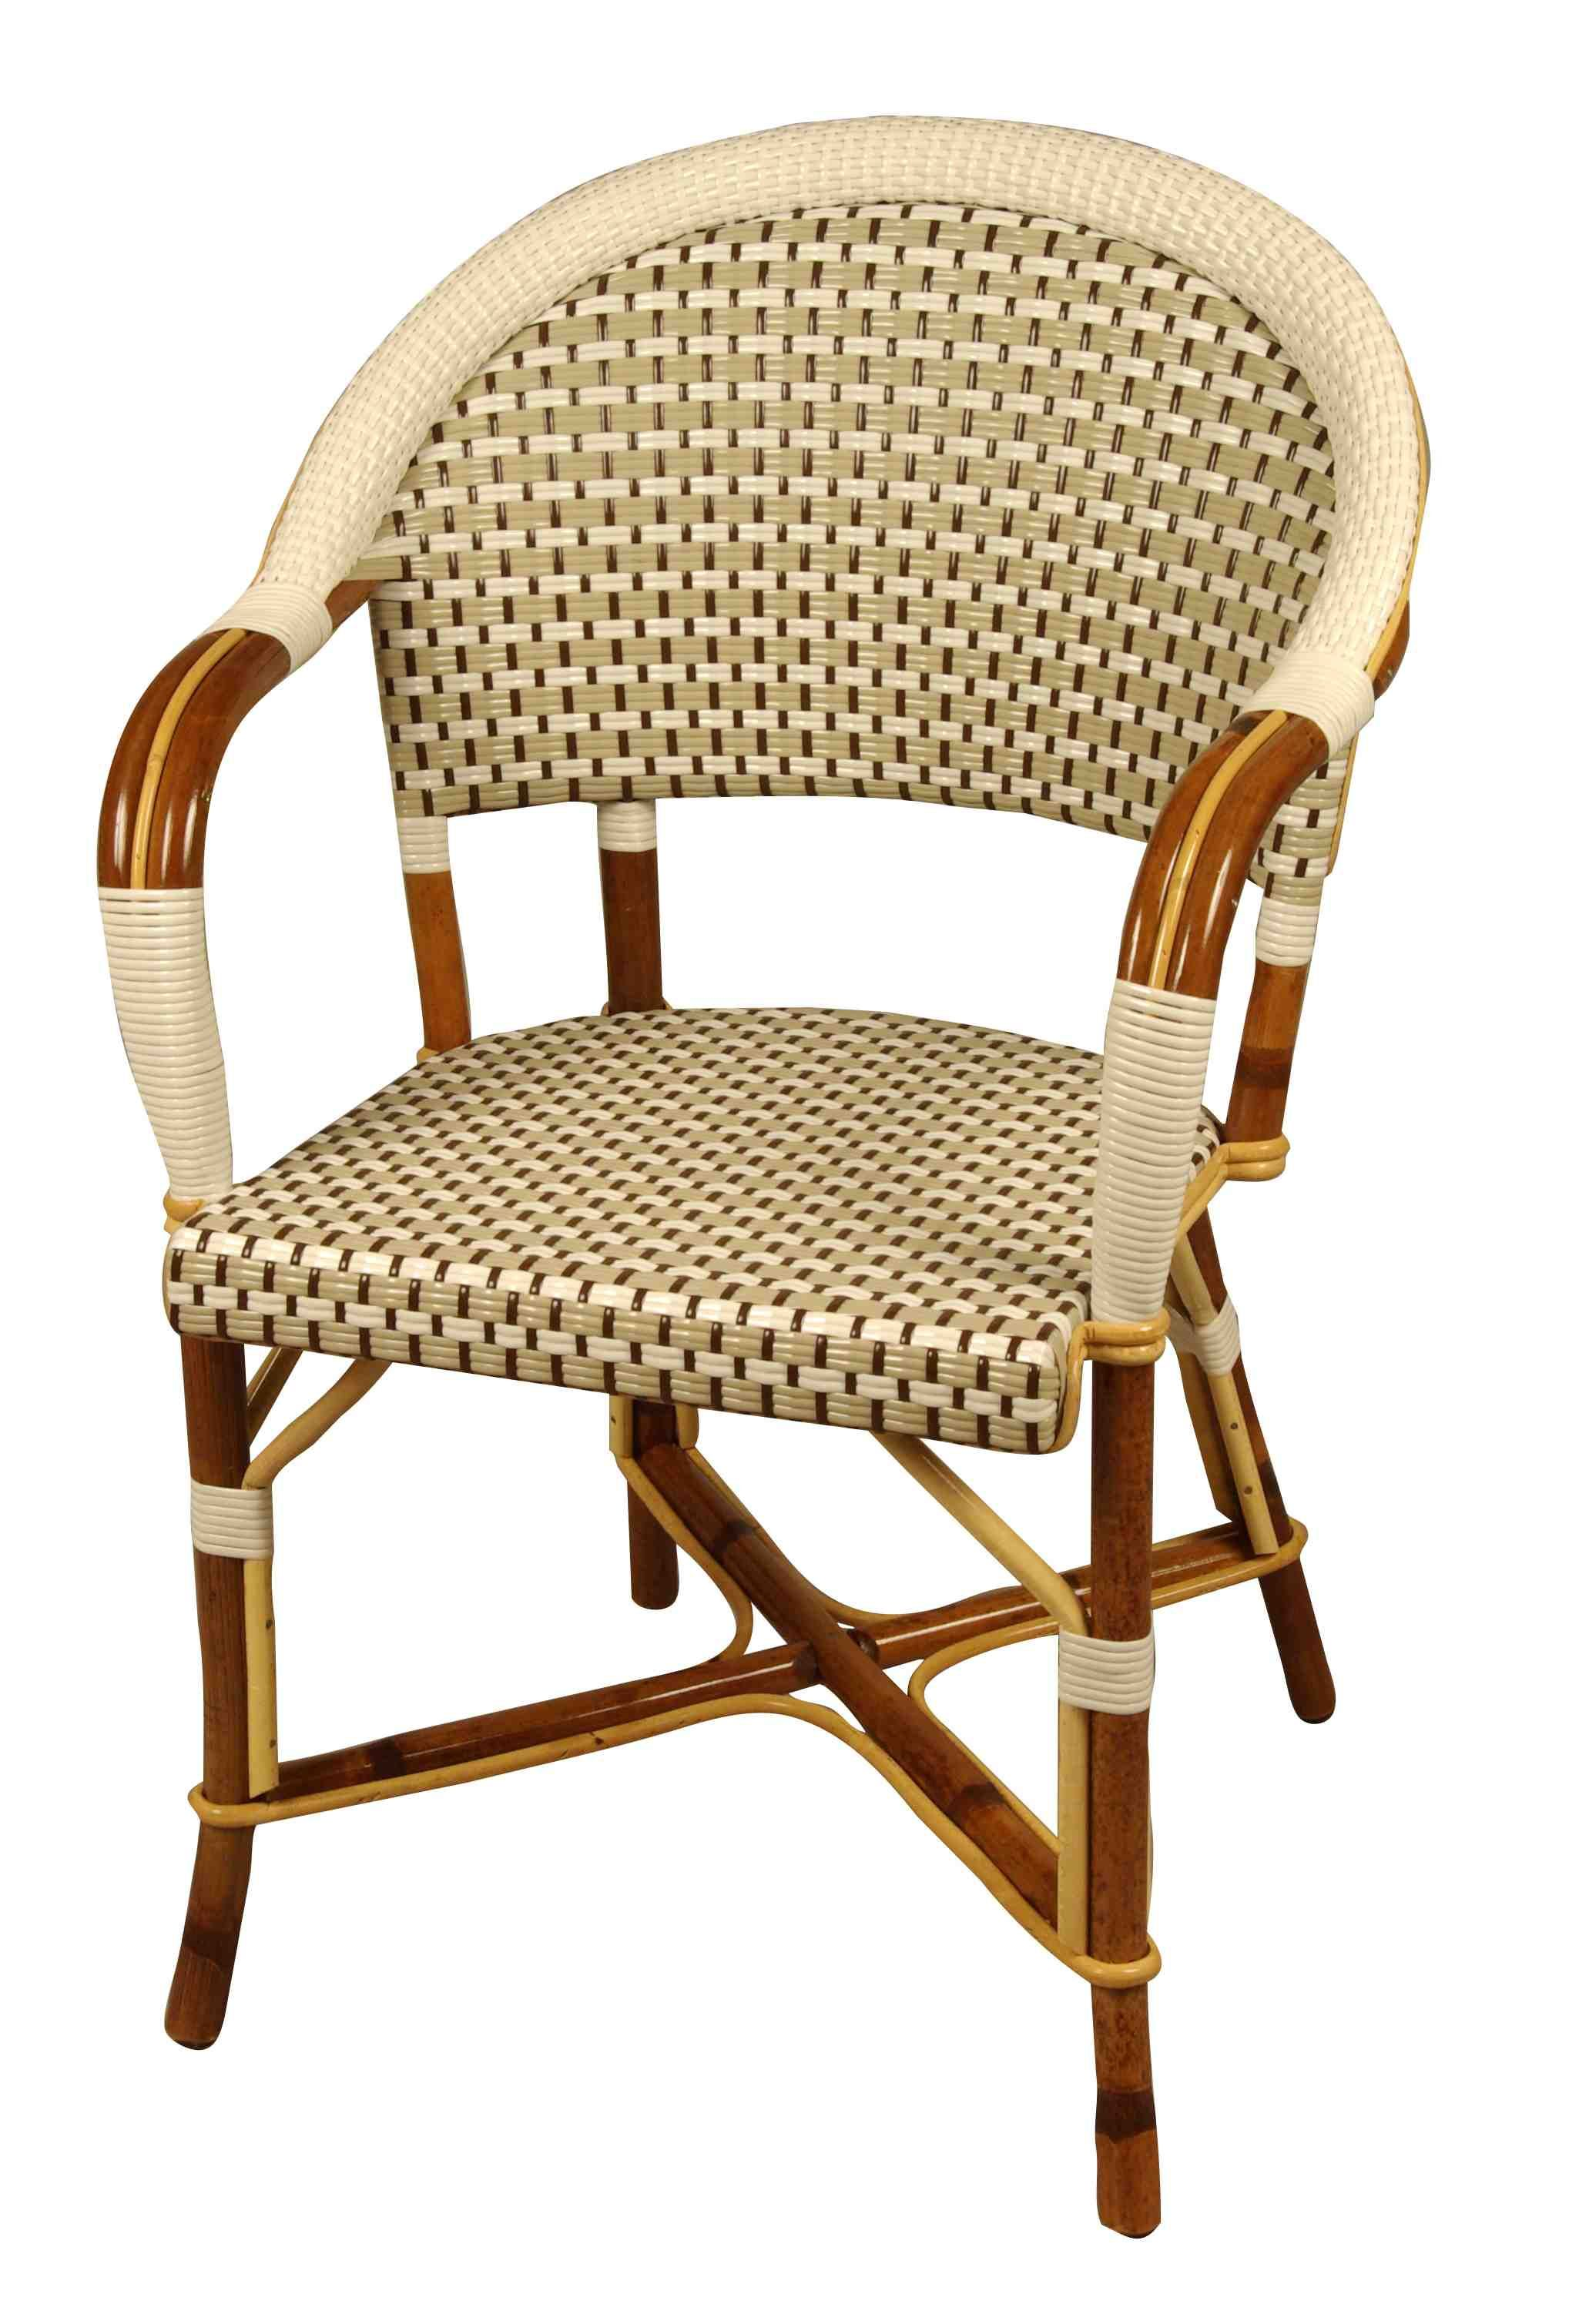 French Bistro Chair Drucker Fauteuil Bastille French Bistro Chair From